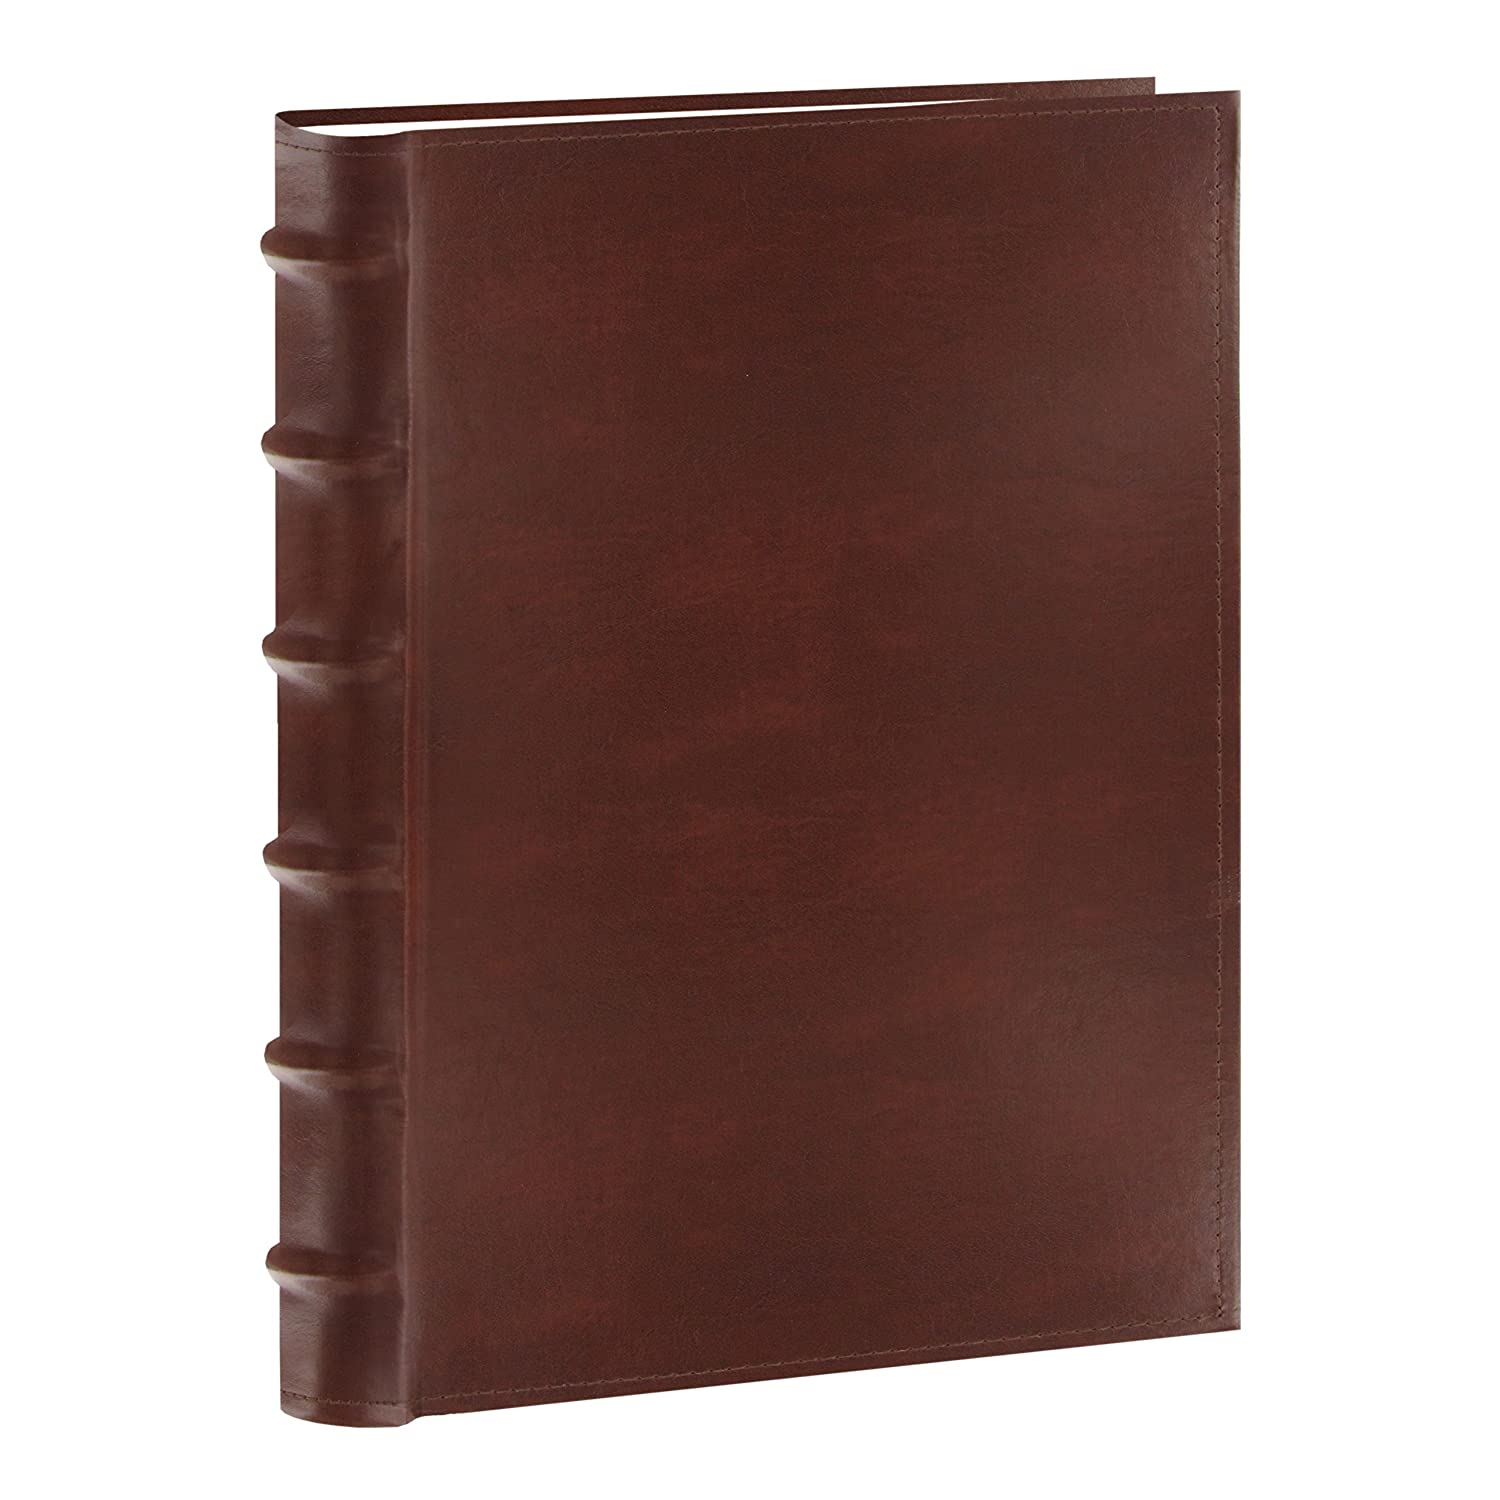 Pioneer Photo Albums CLB-346/BN Sewn Bonded Leather Bi-Directional 300 Photos Pocket Album (Brown) 2 PACK